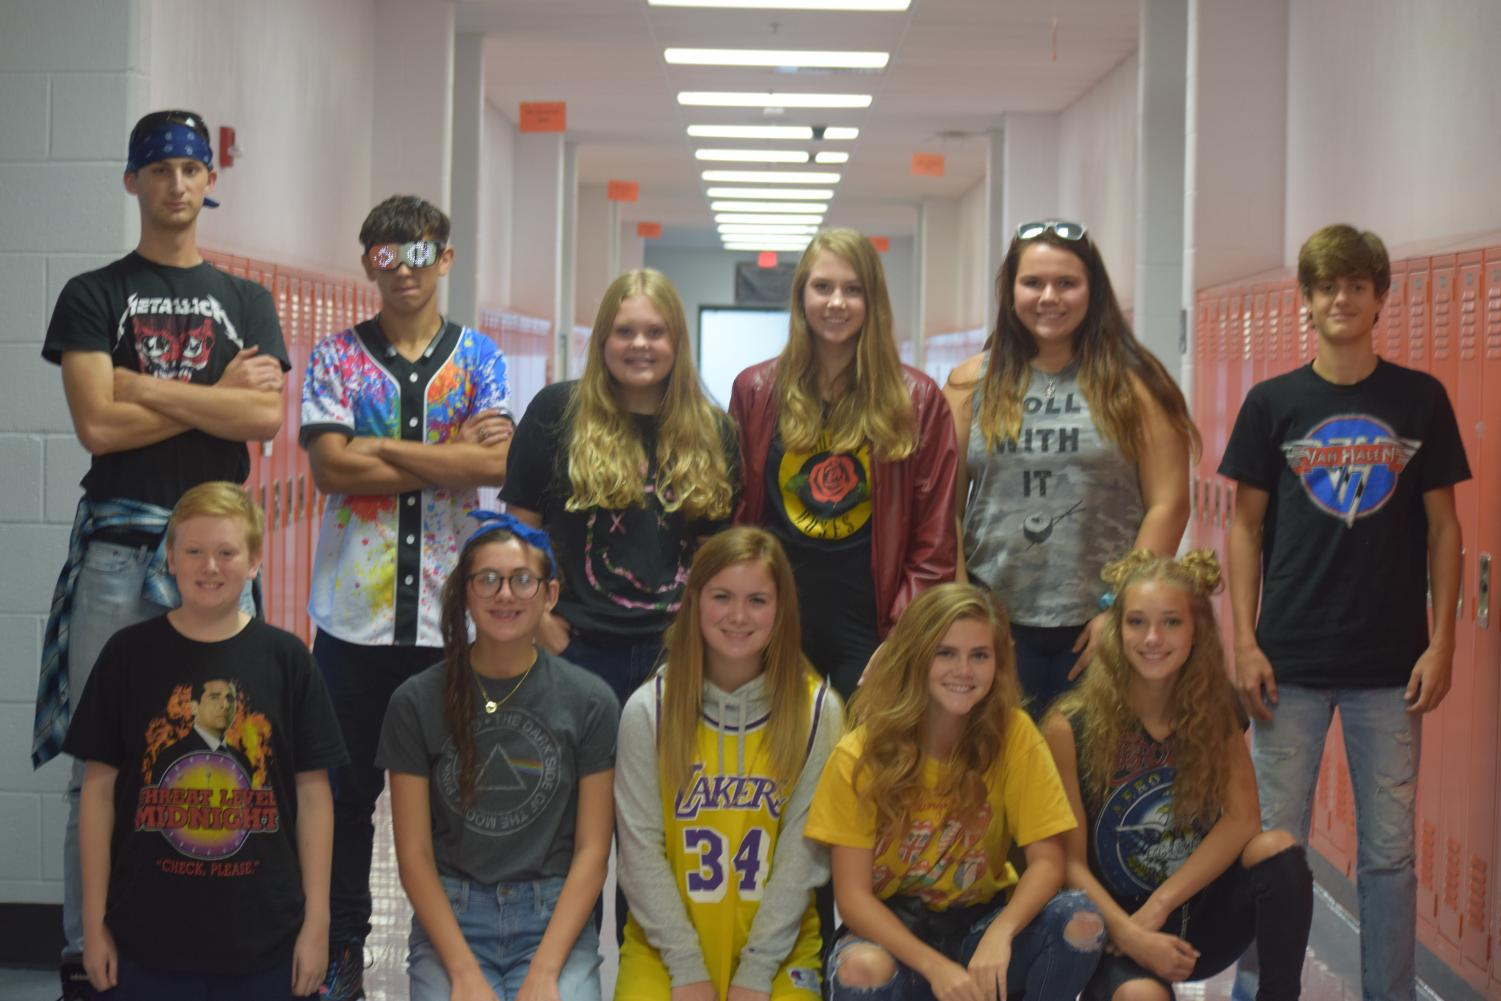 HHS+students+pose+together+for+a+quick+picture.+